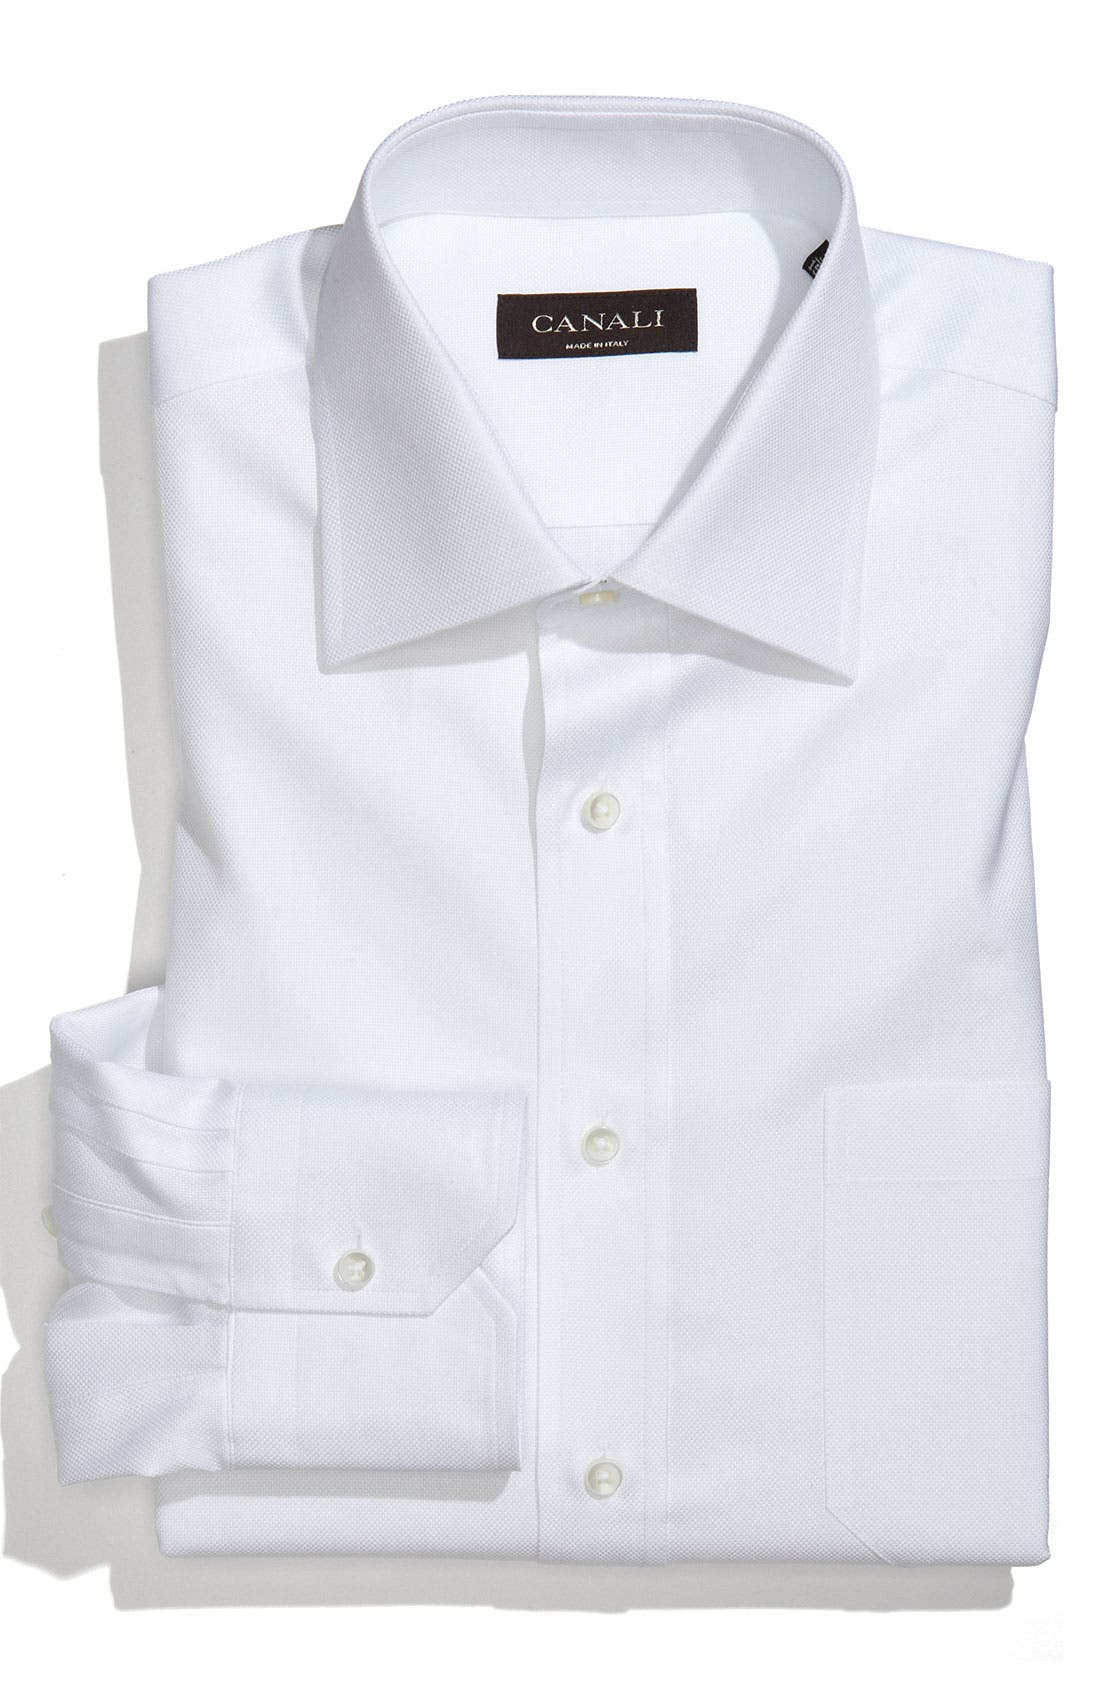 Alternate Image 1 Selected - Canali Men's Solid Cotton Regular Fit Dress Shirt